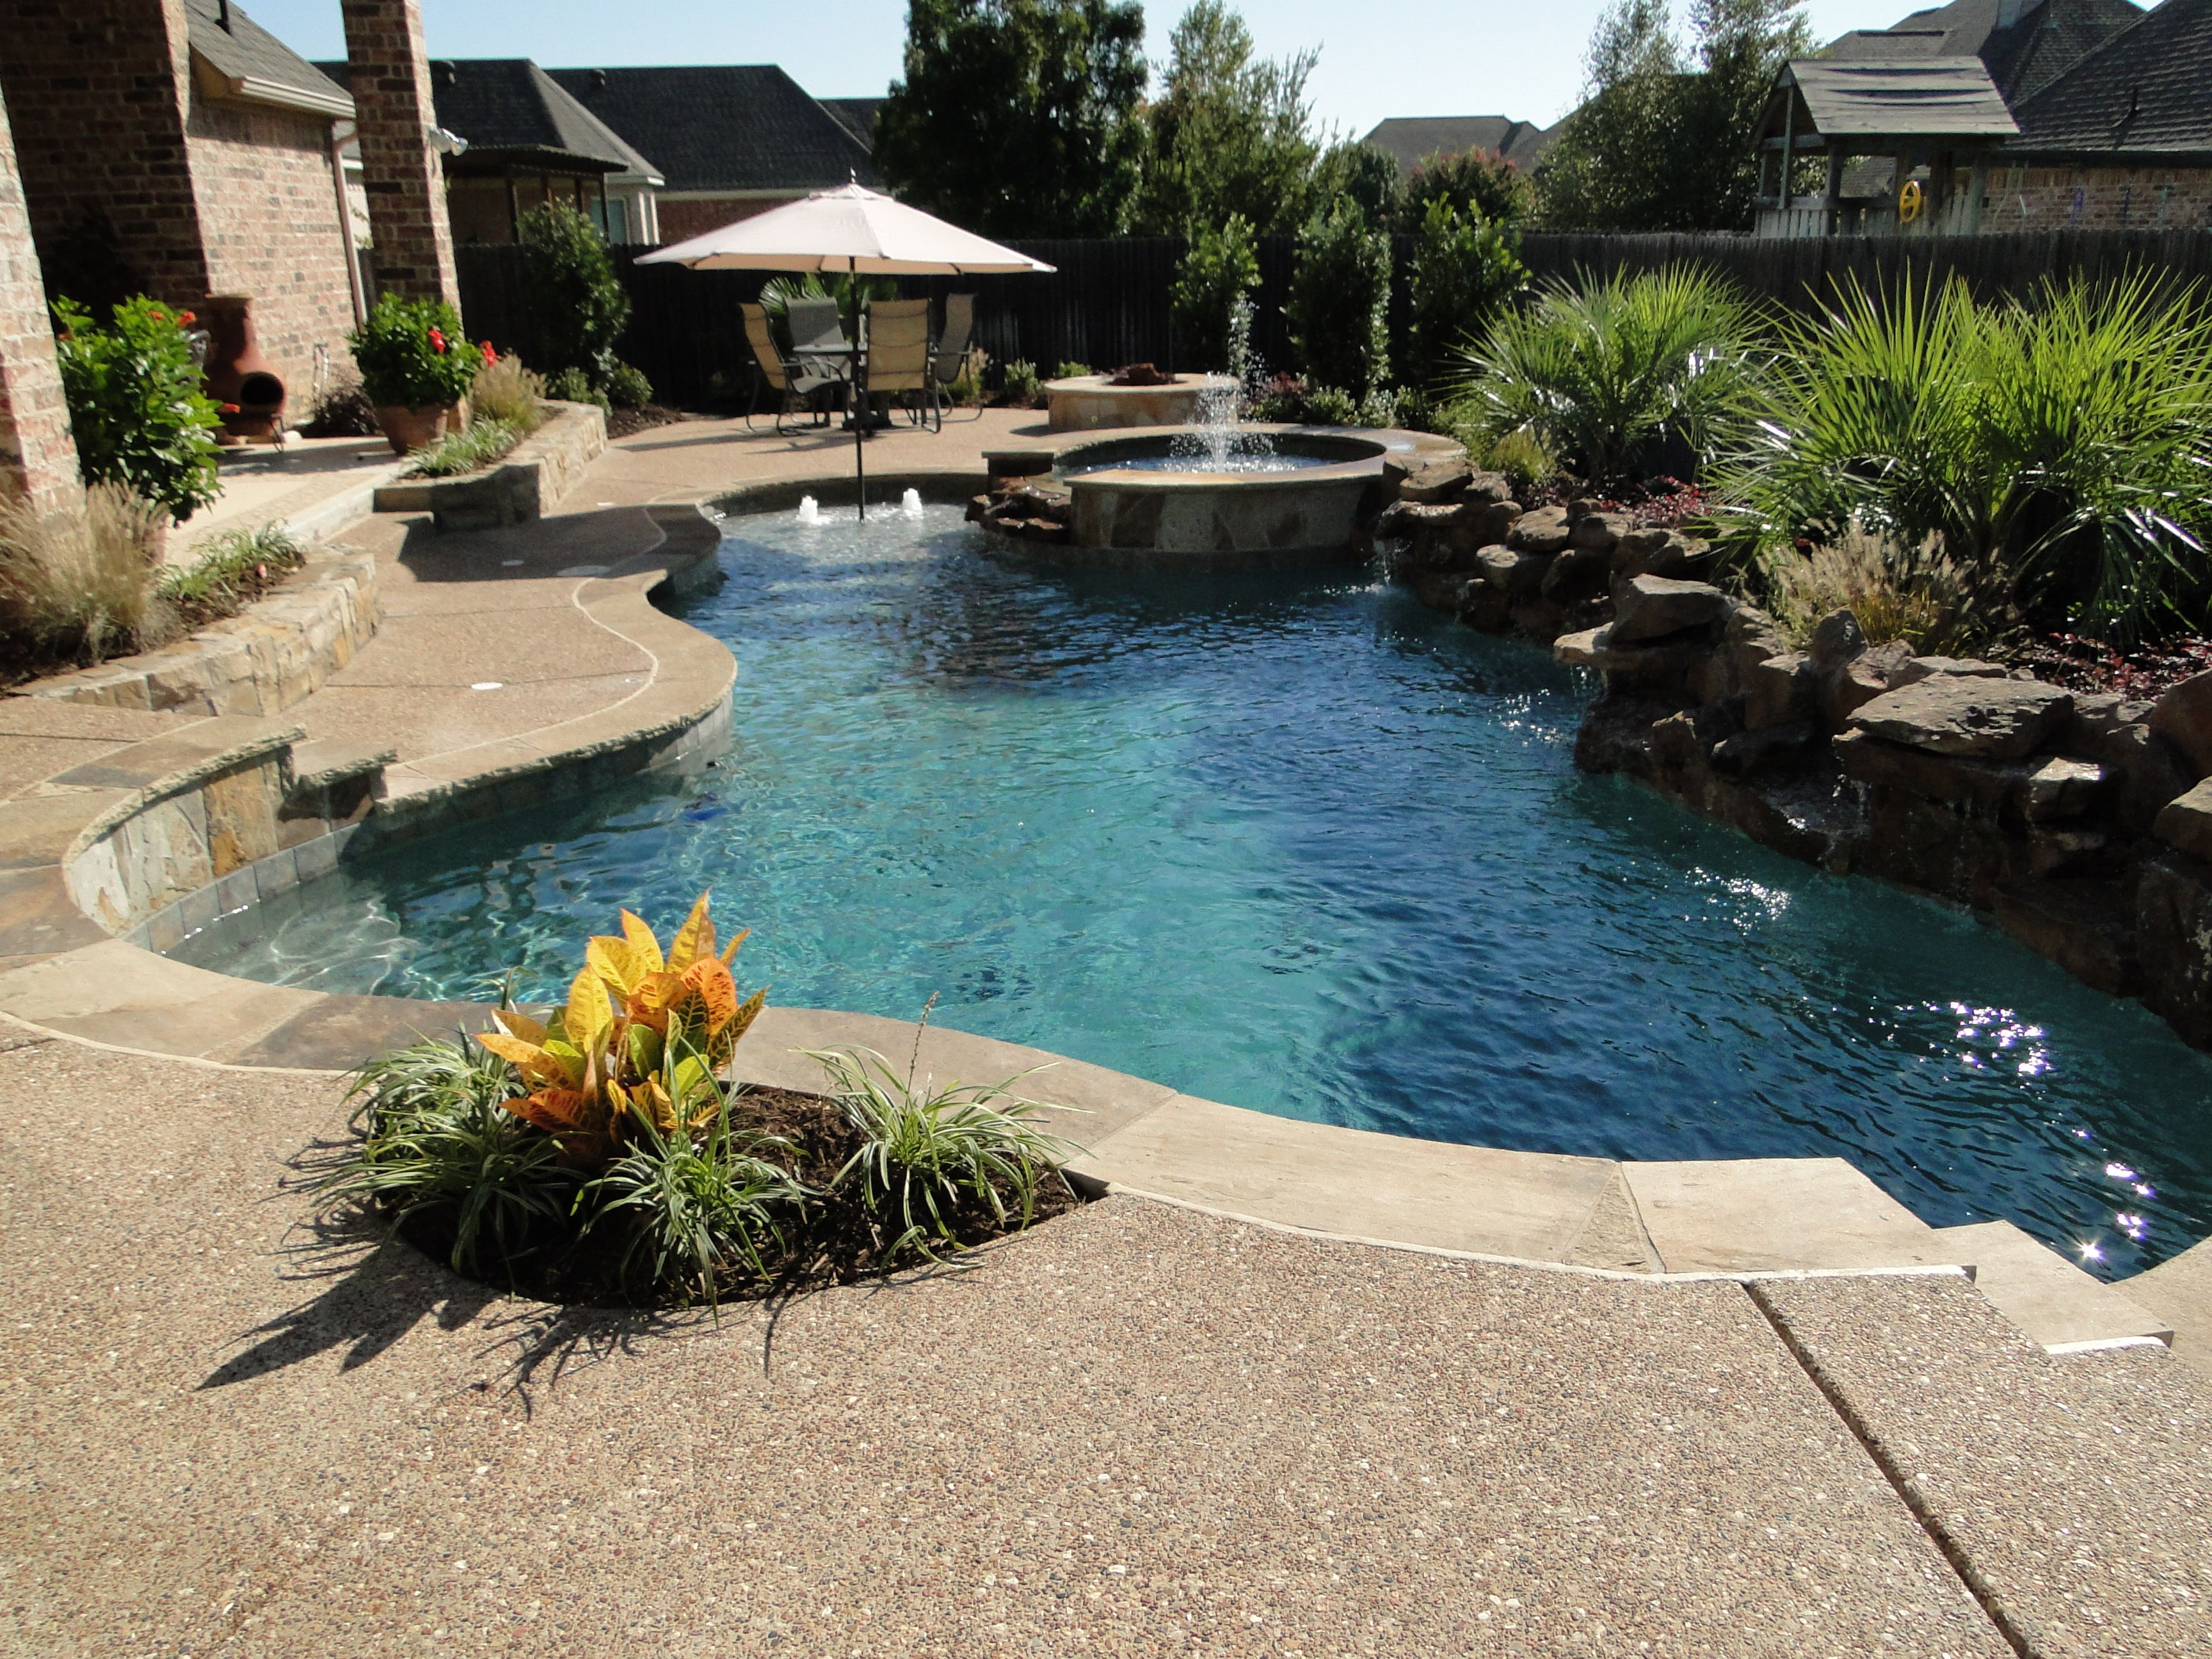 Ideas Landscaping Around Your Driveway Landscapingsurvival Small Backyard Pools Backyard Pool Landscaping Beautiful Pools Backyard landscaping ideas around pool